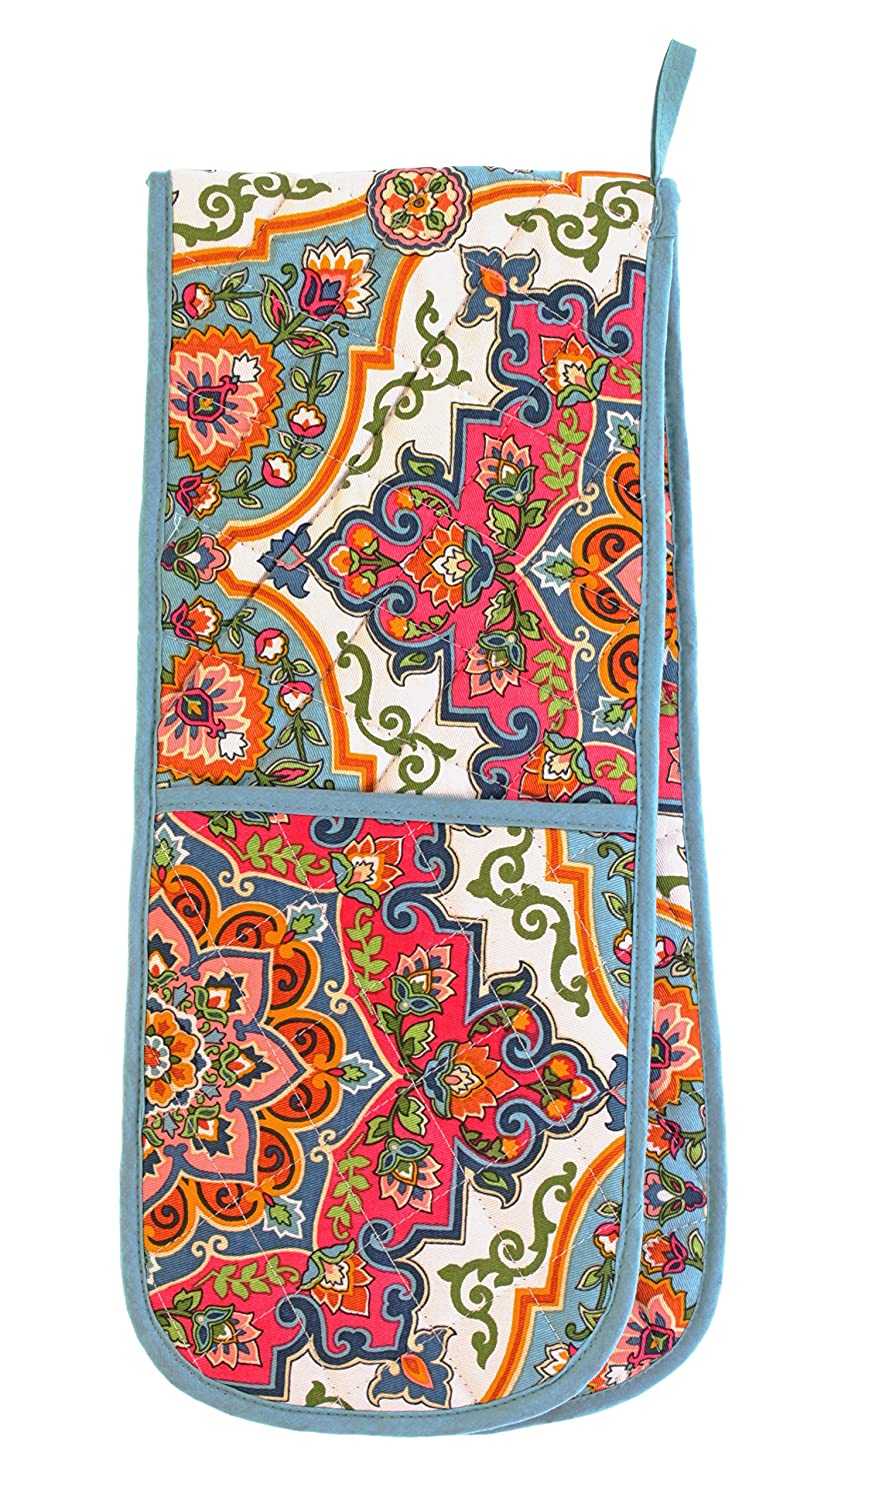 "Ulster Weavers 34.6"" x 7.1"" Moroccan Tiles Double Glove"